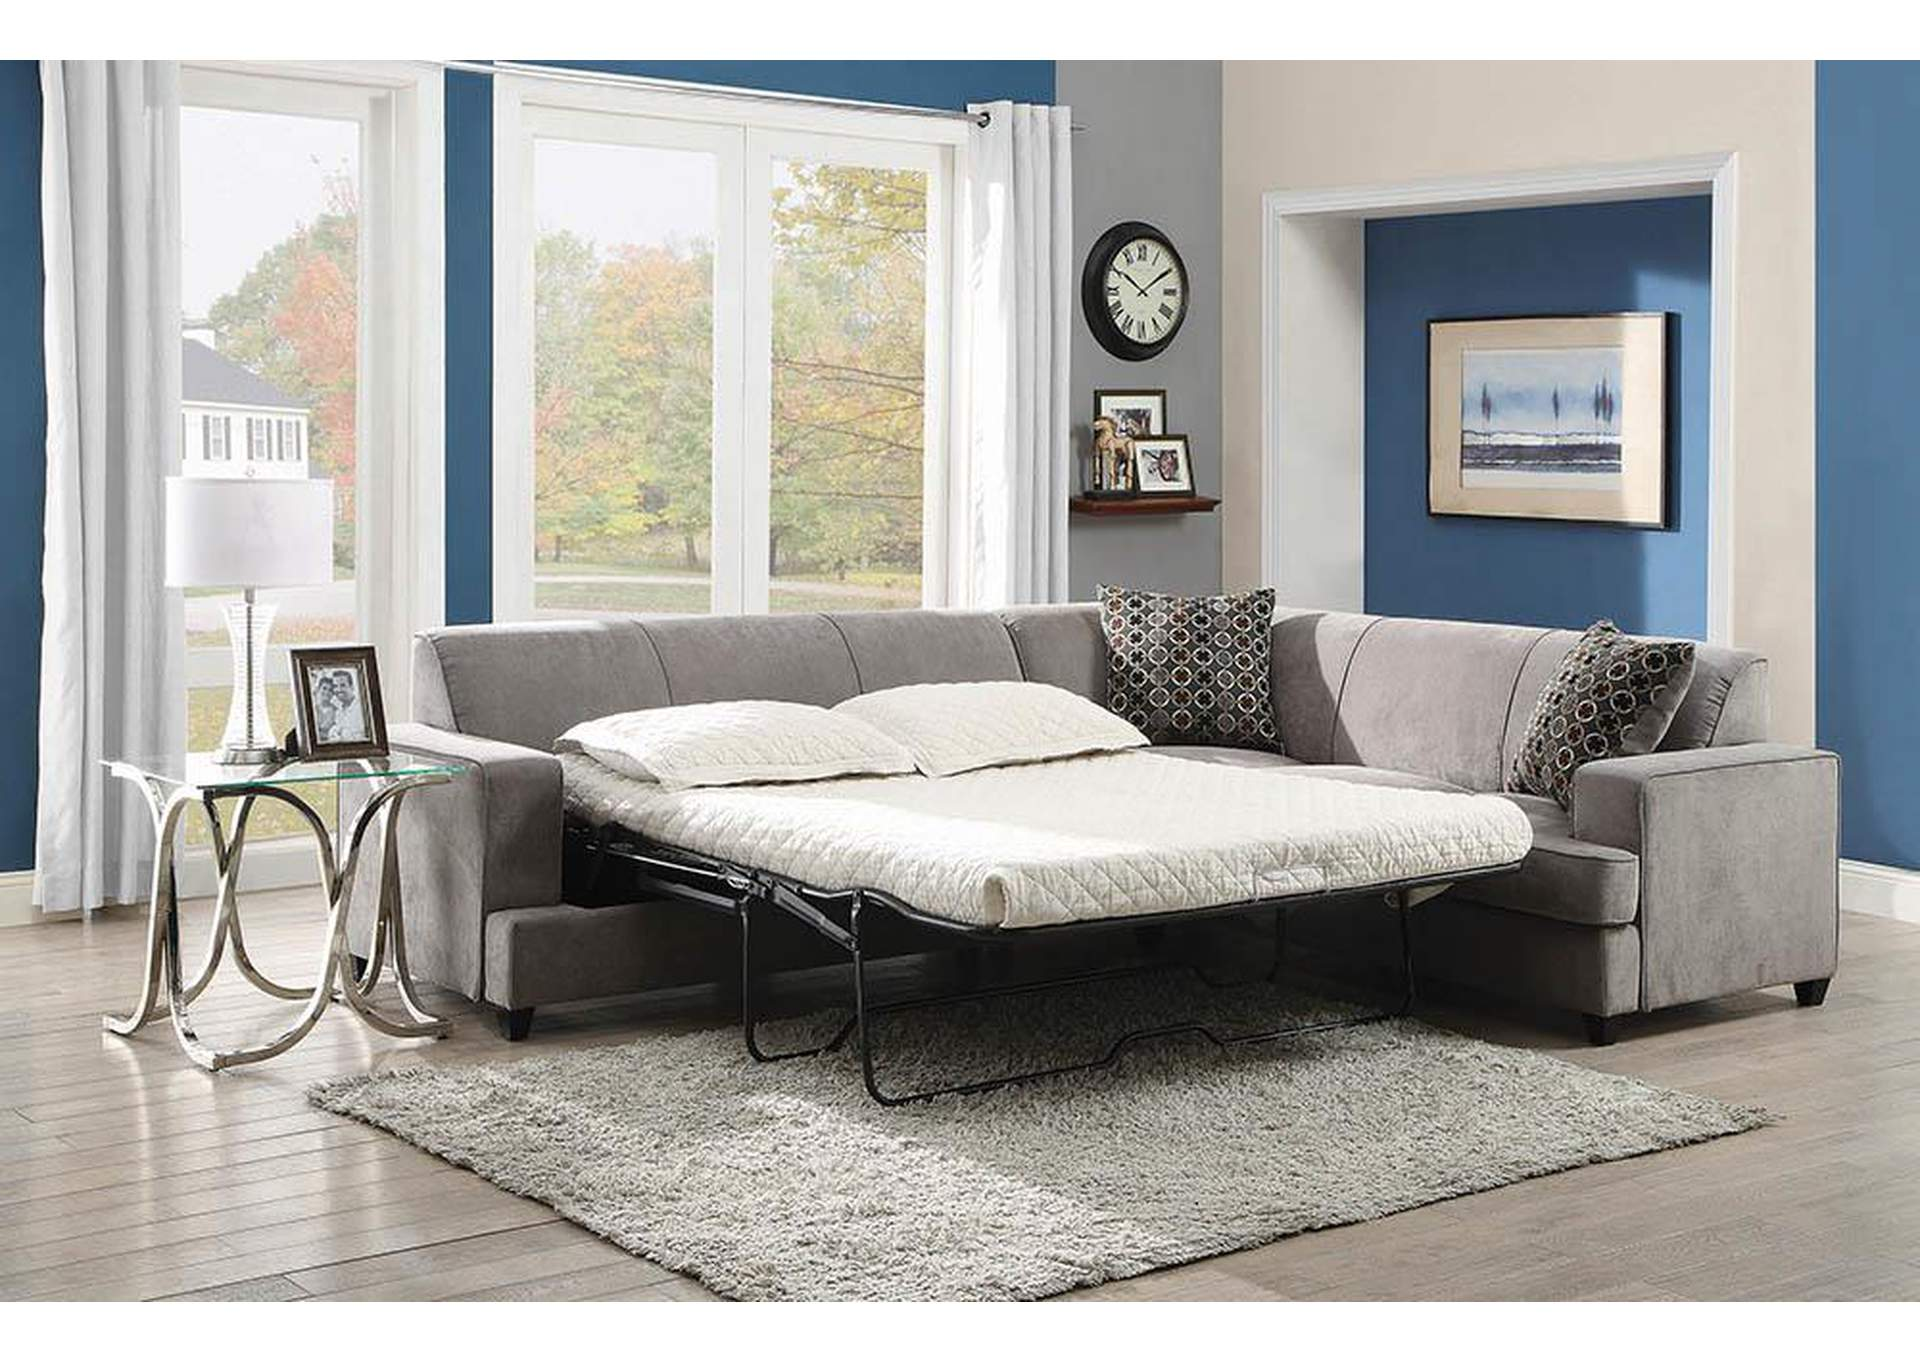 Tess Grey Sectional,Coaster Furniture